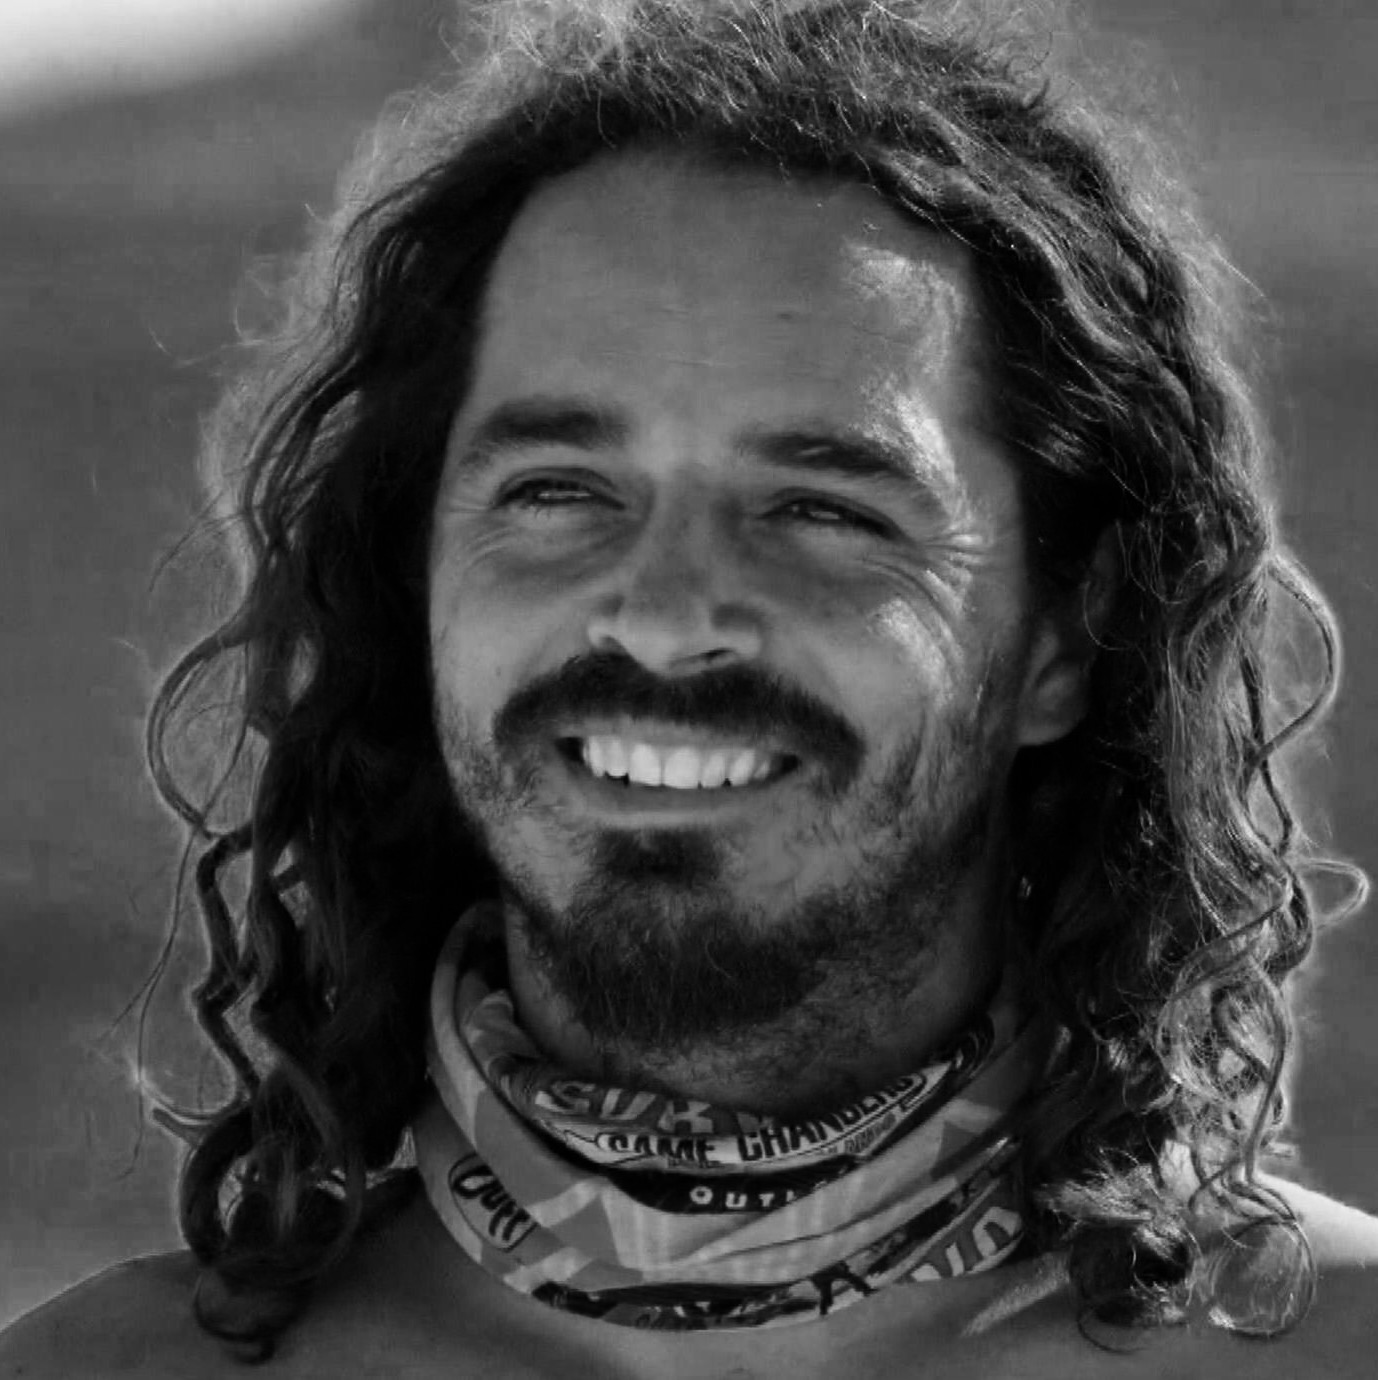 OZZY LUSTH<br>Cook Islands, Micronesia, South Pacific & Game Changers